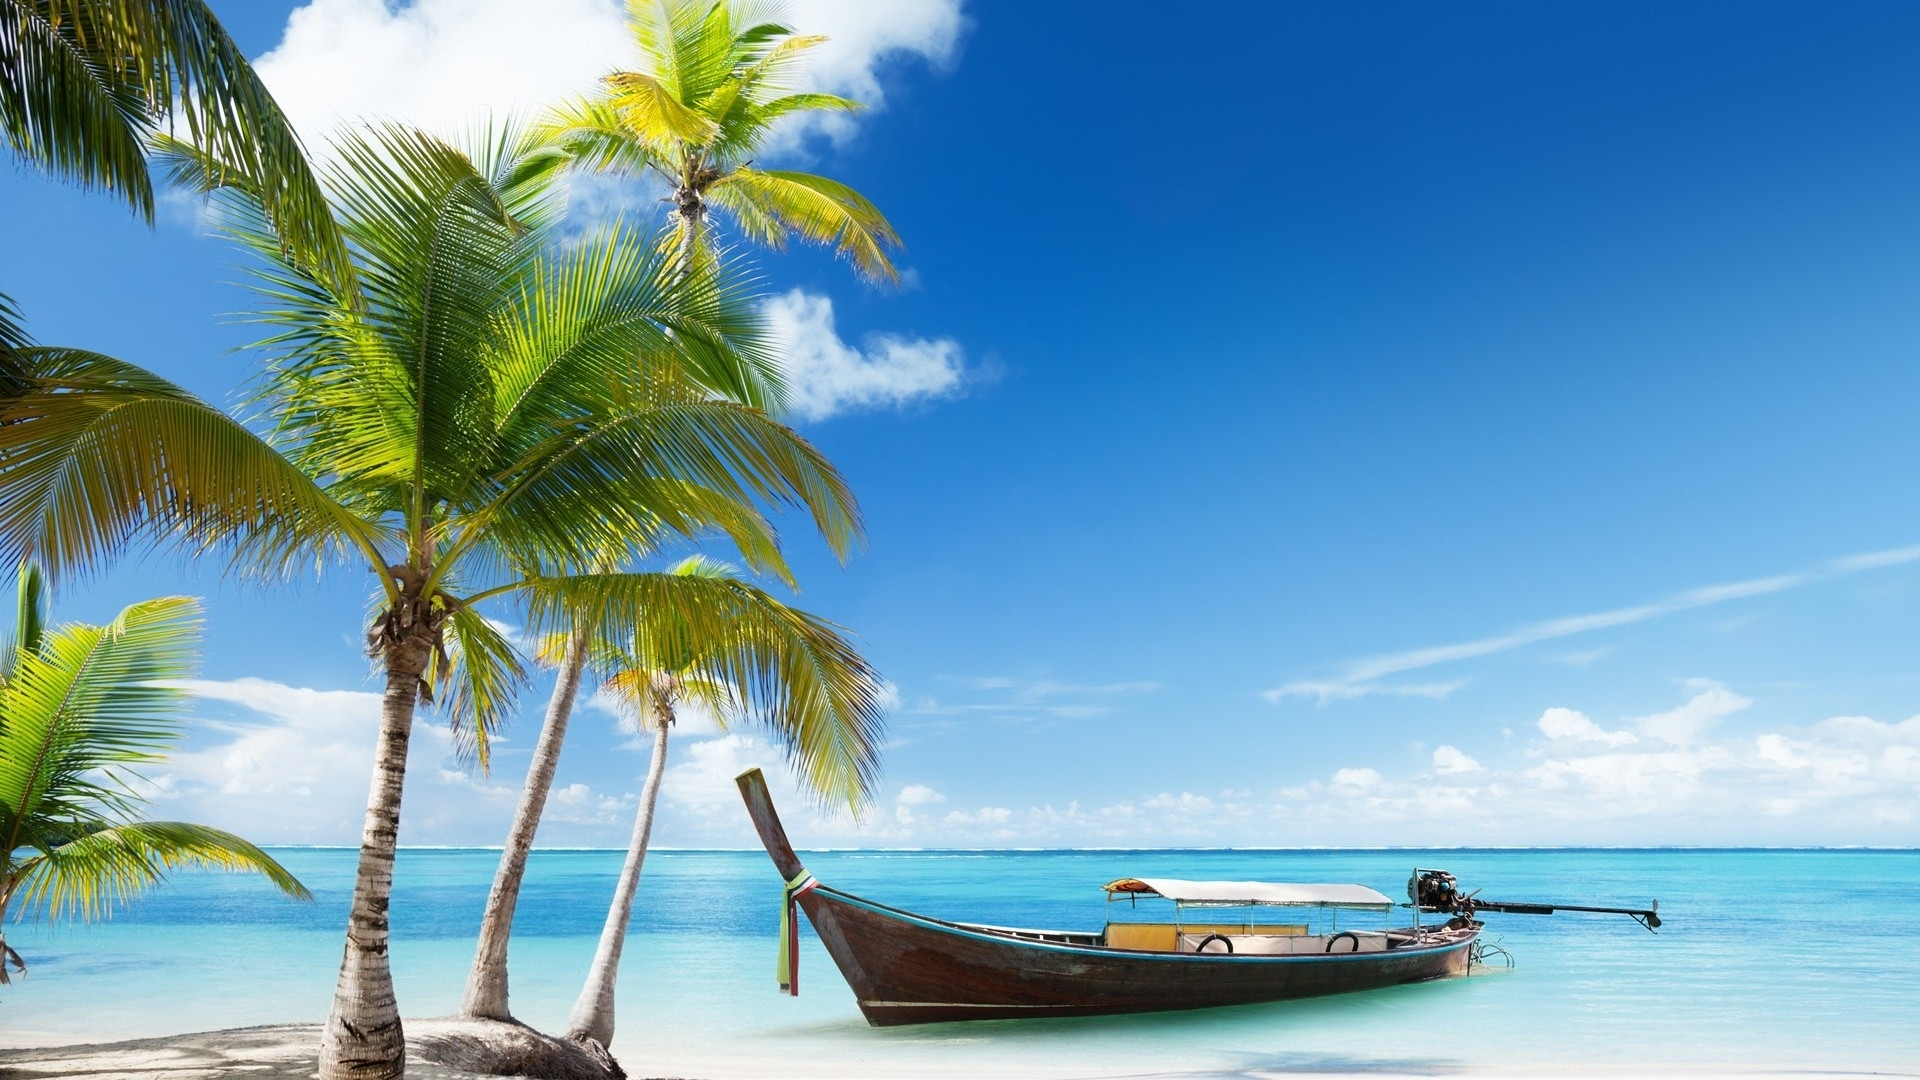 10 Latest Palm Tree Beach Wallpaper FULL HD 1920×1080 For PC Background